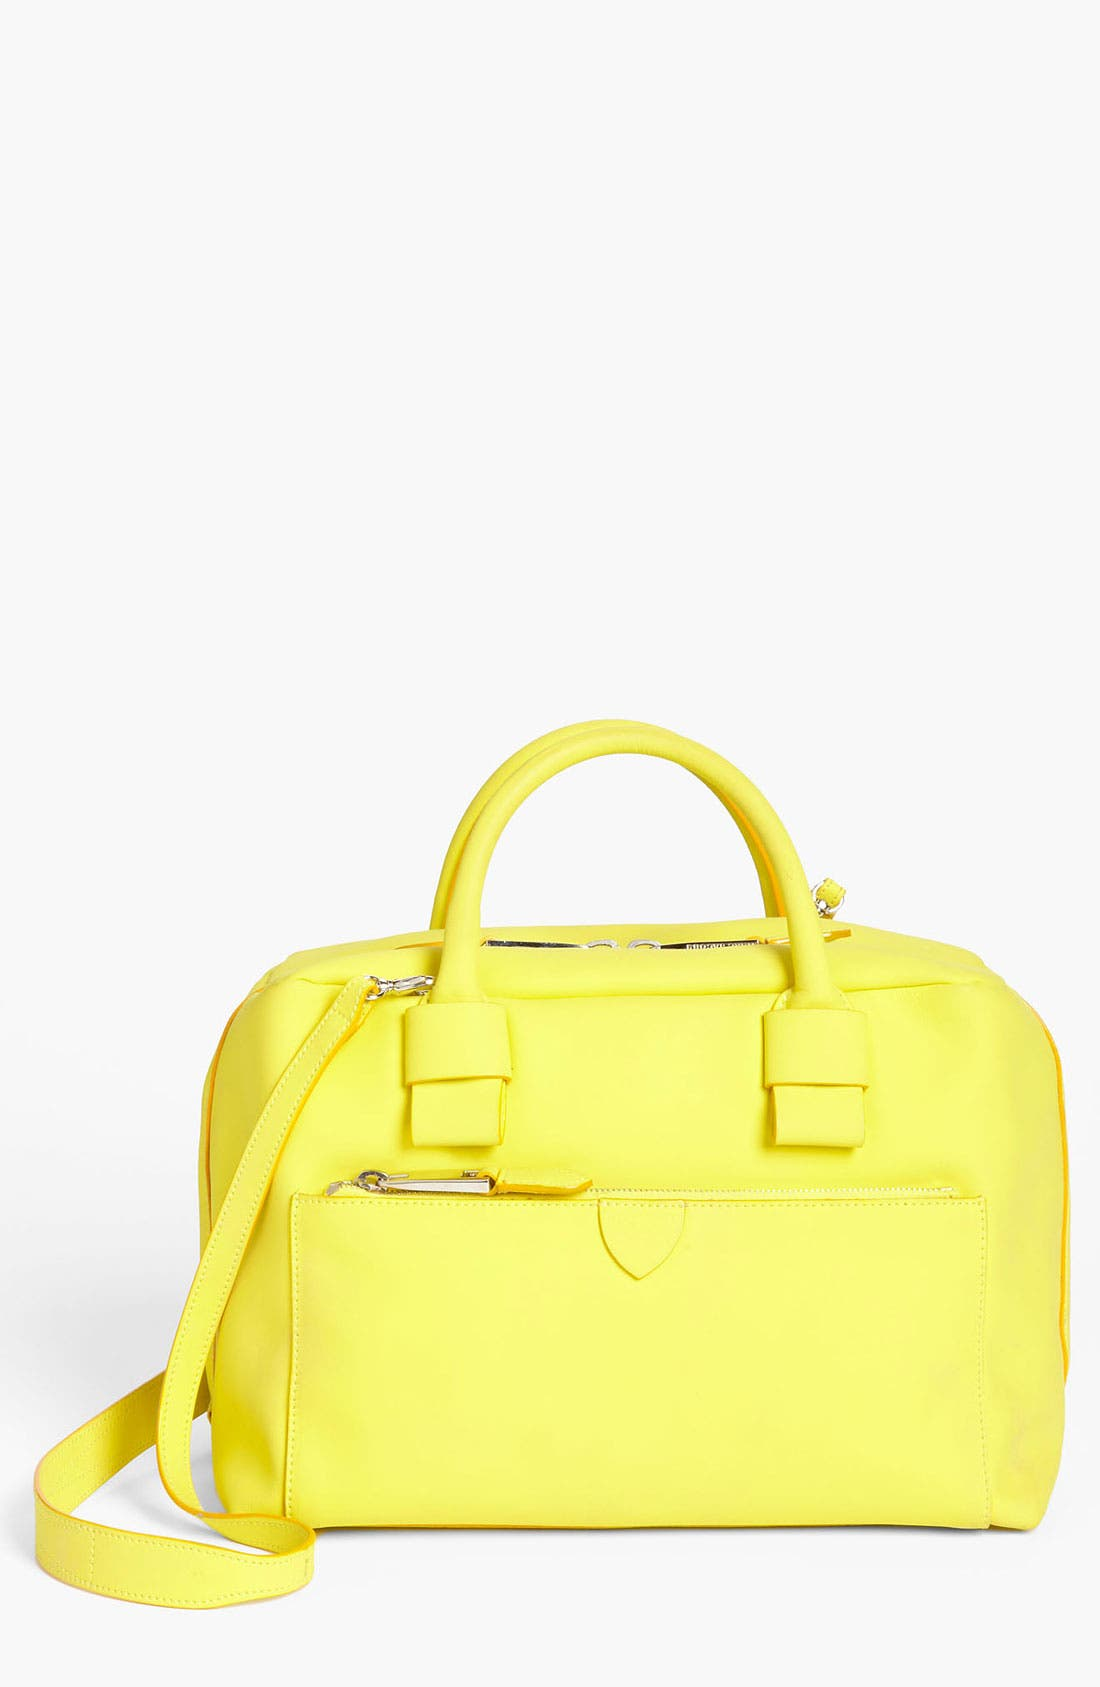 Main Image - MARC JACOBS 'Small Antonia' Rubberized Leather Satchel